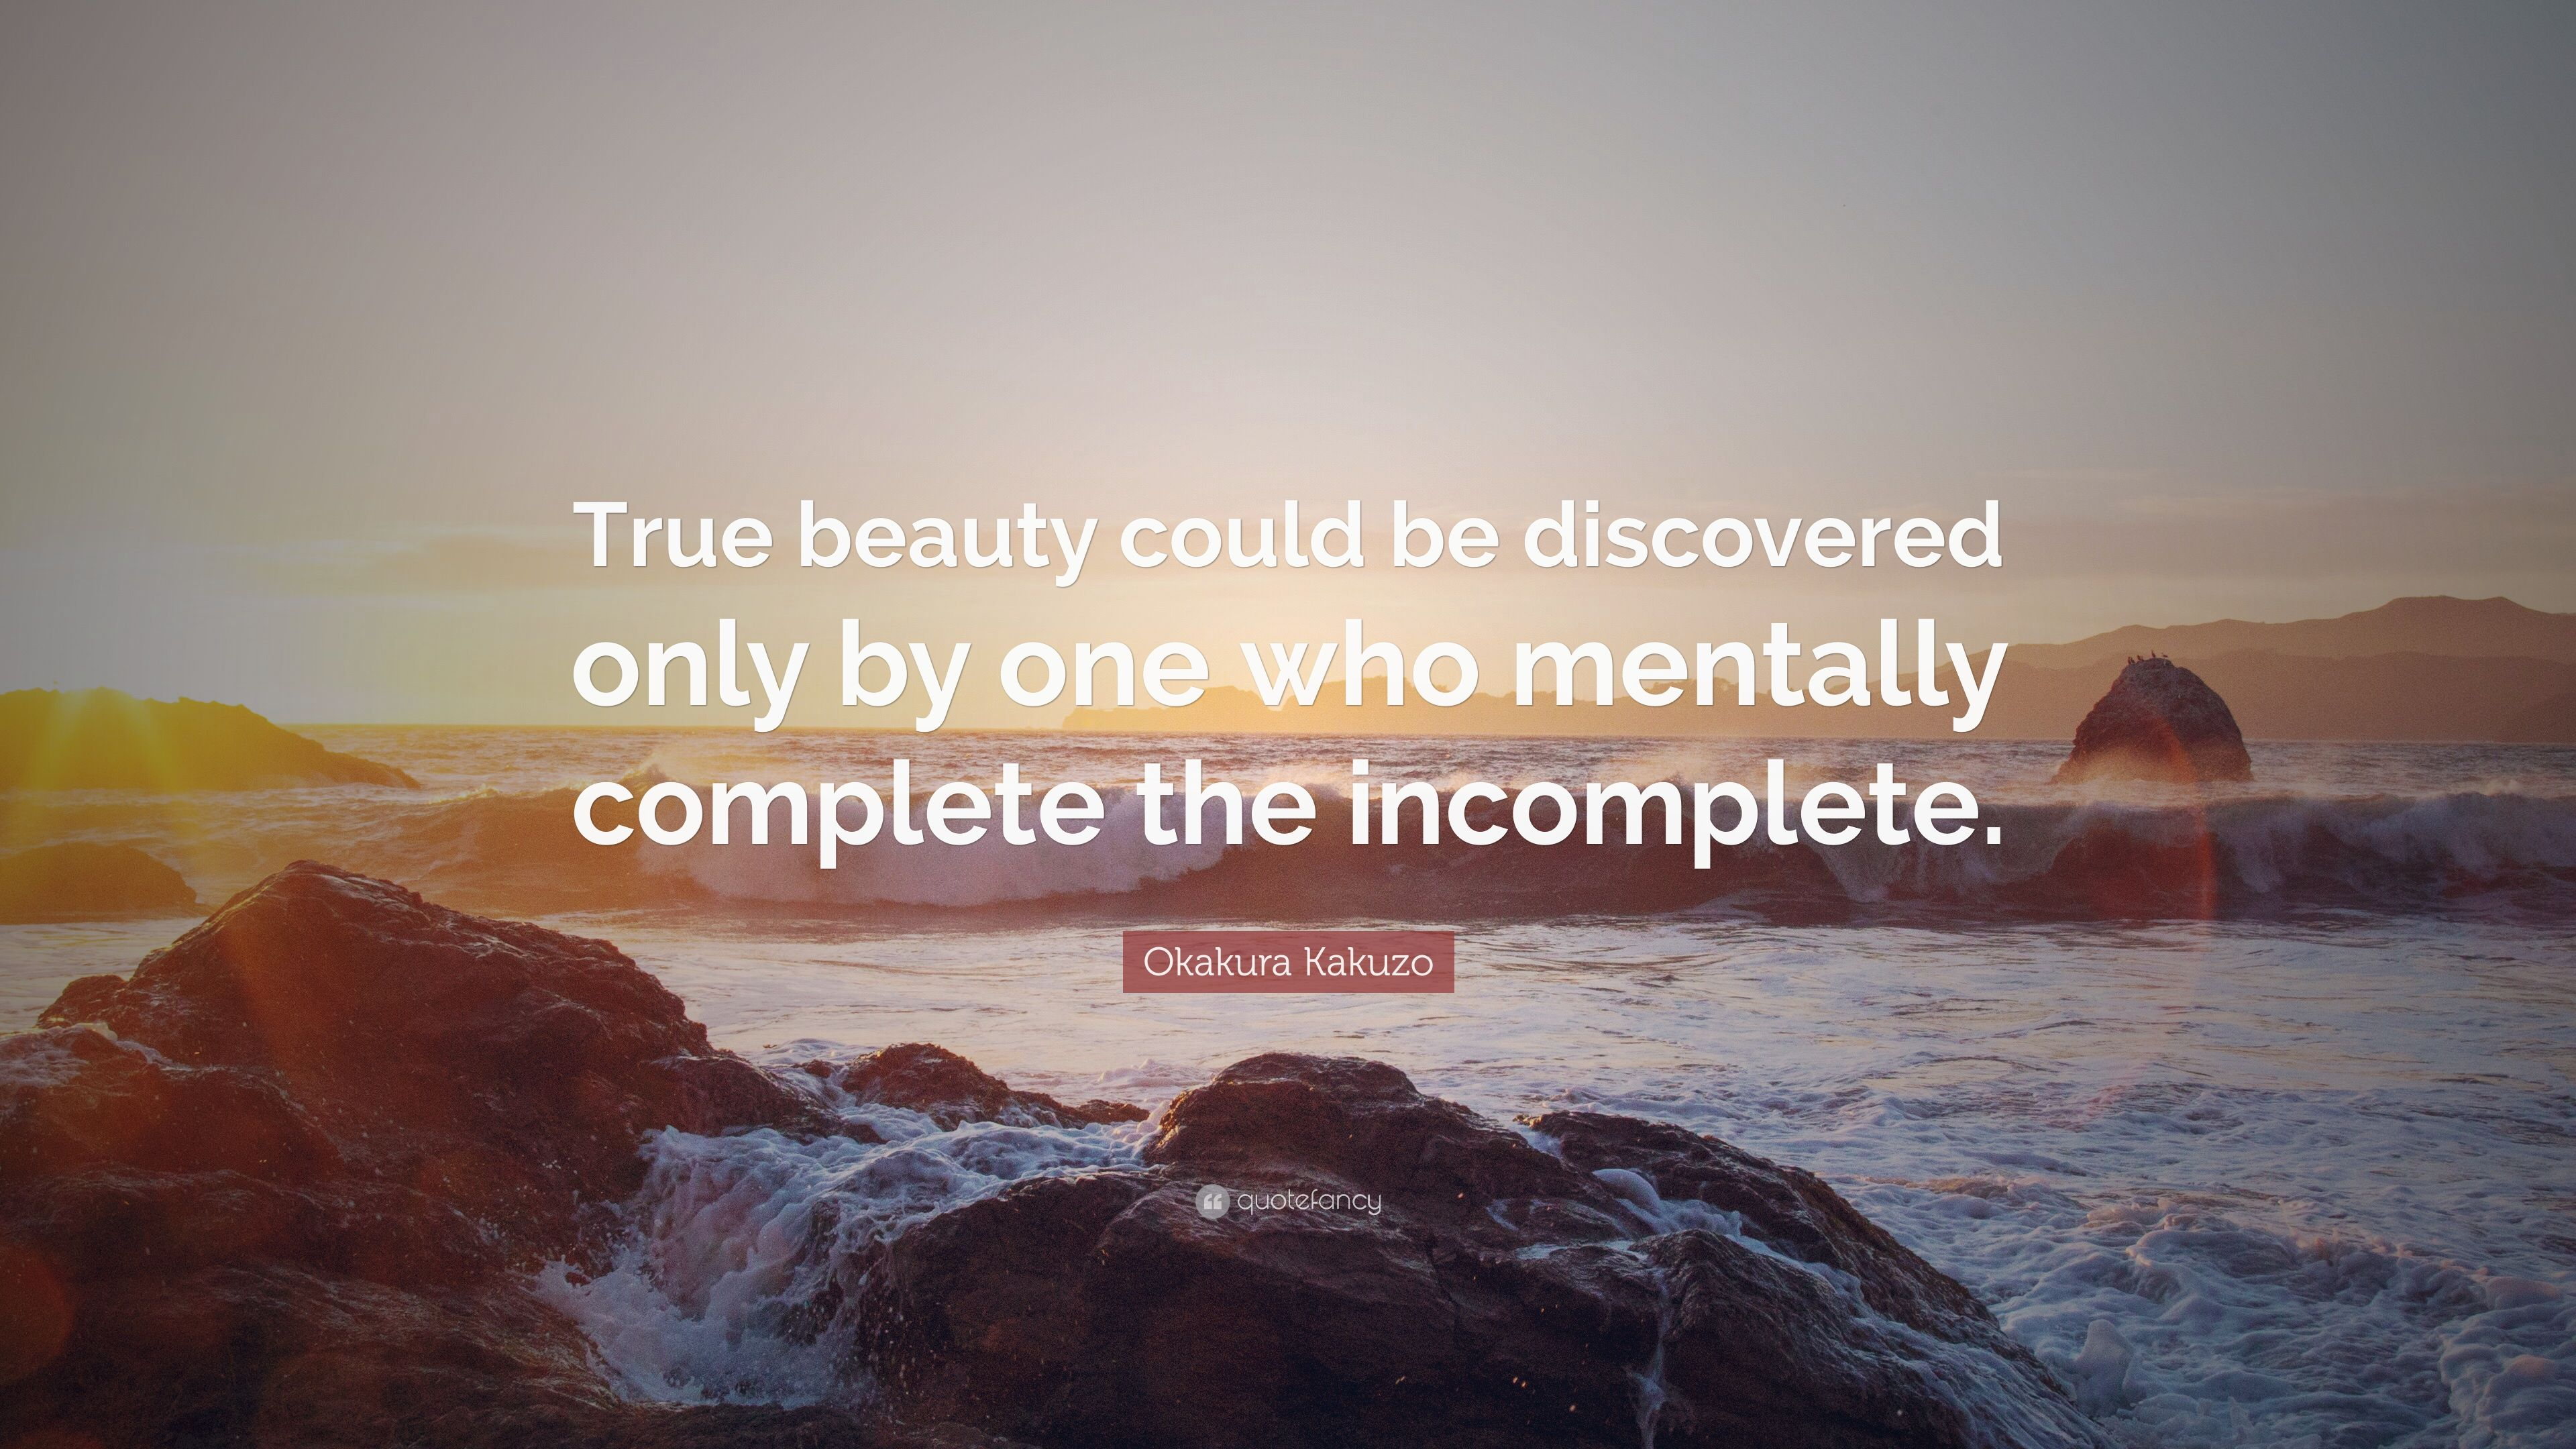 Picture Quote Maker Deepak Chopra Quote Generator Brilliant Study Shows That People